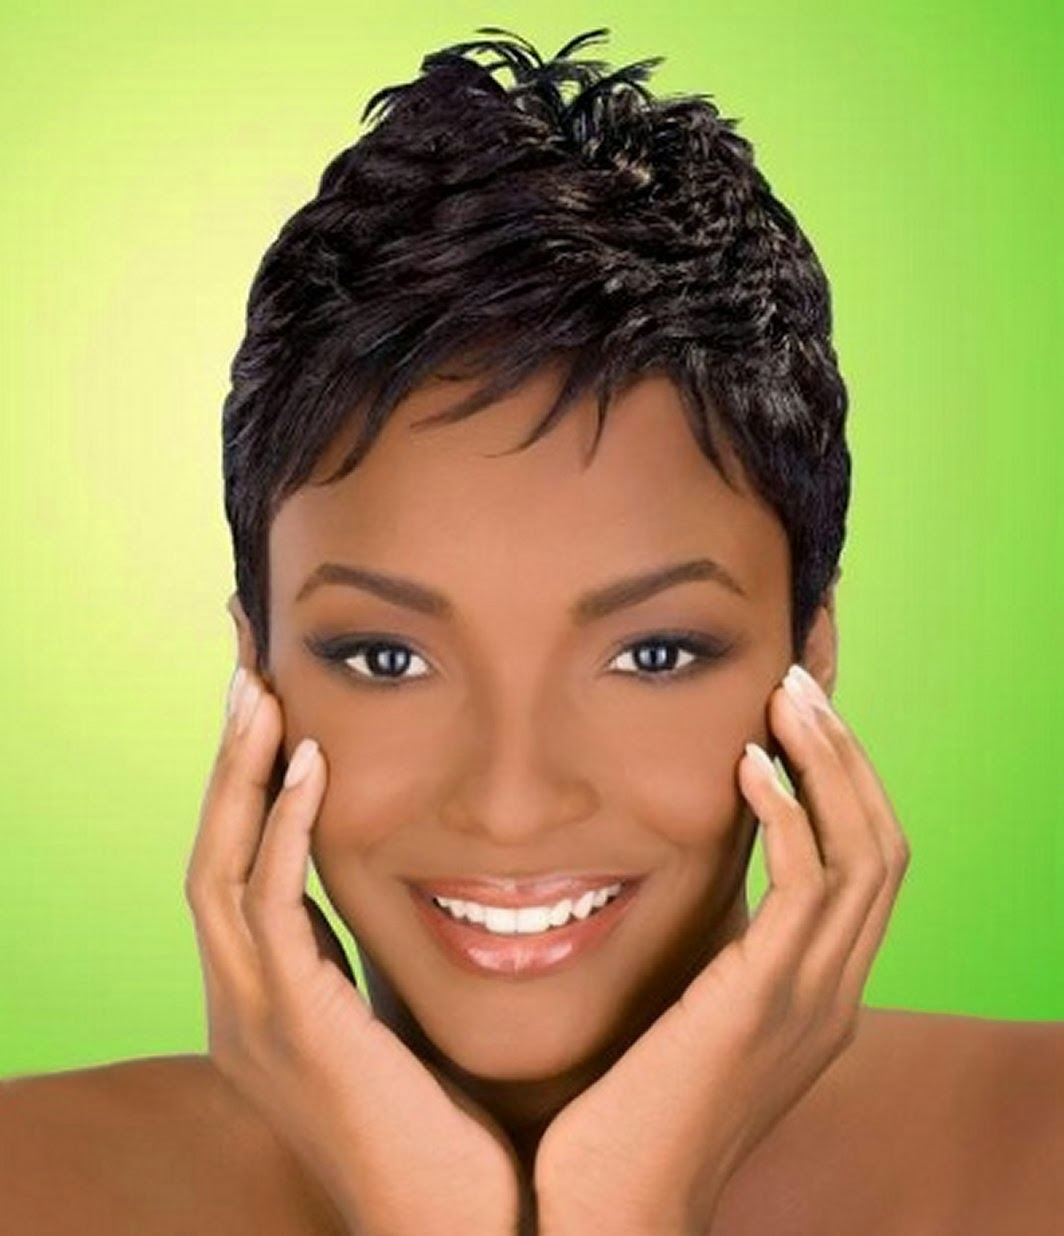 Admirable Good Short Hairstyles For African American Women Short Hairstyles For Black Women Fulllsitofus